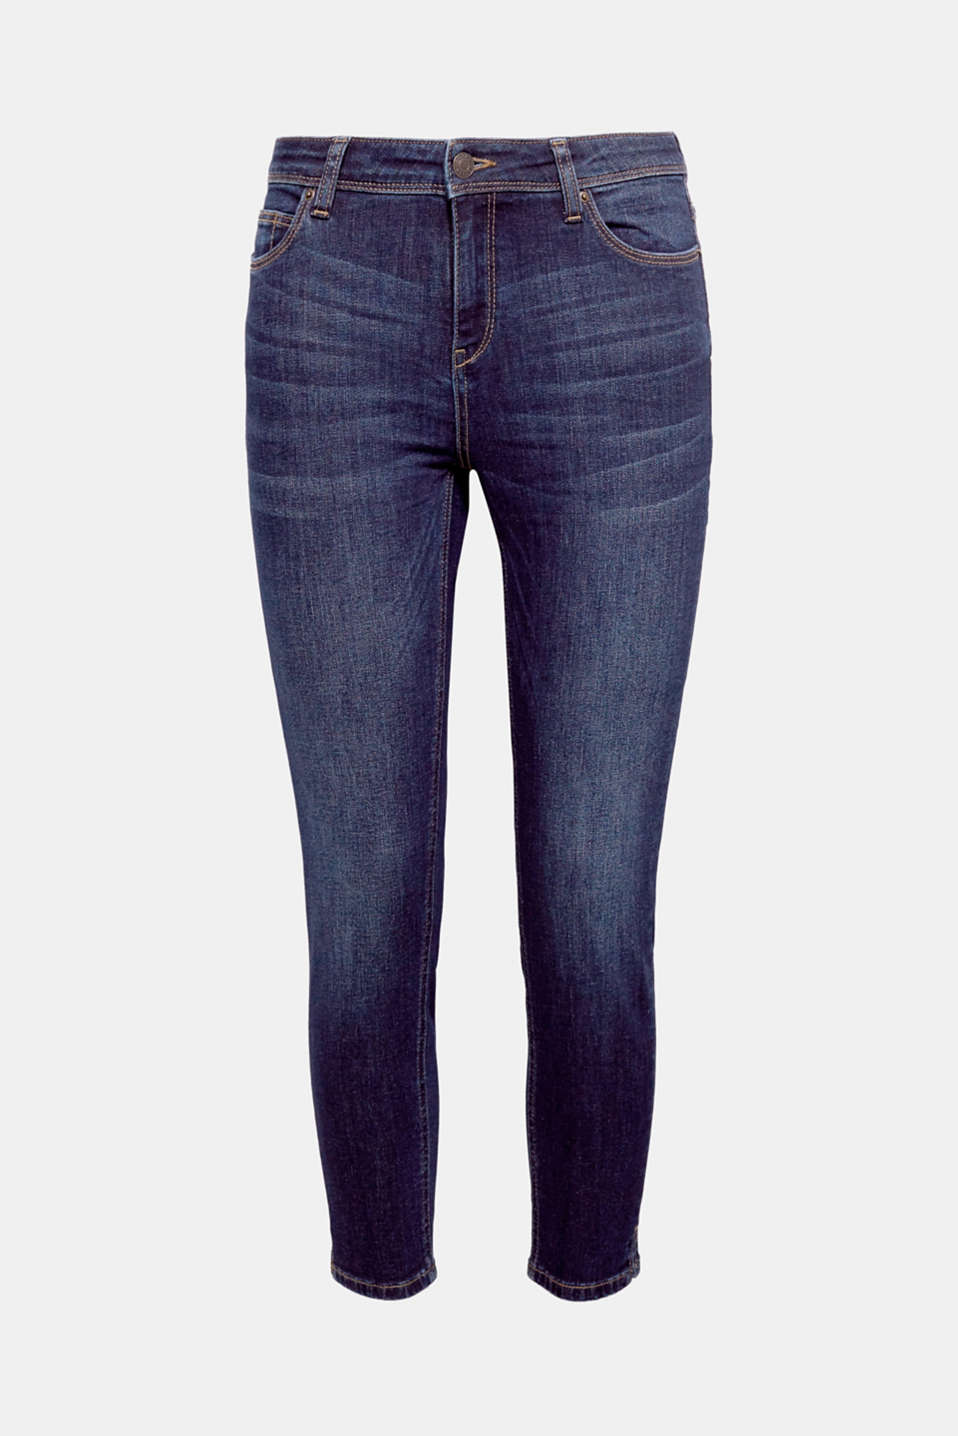 Finally! They're back: these comfortable, summery, airy capri jeans with added stretch for comfort and trendy details!